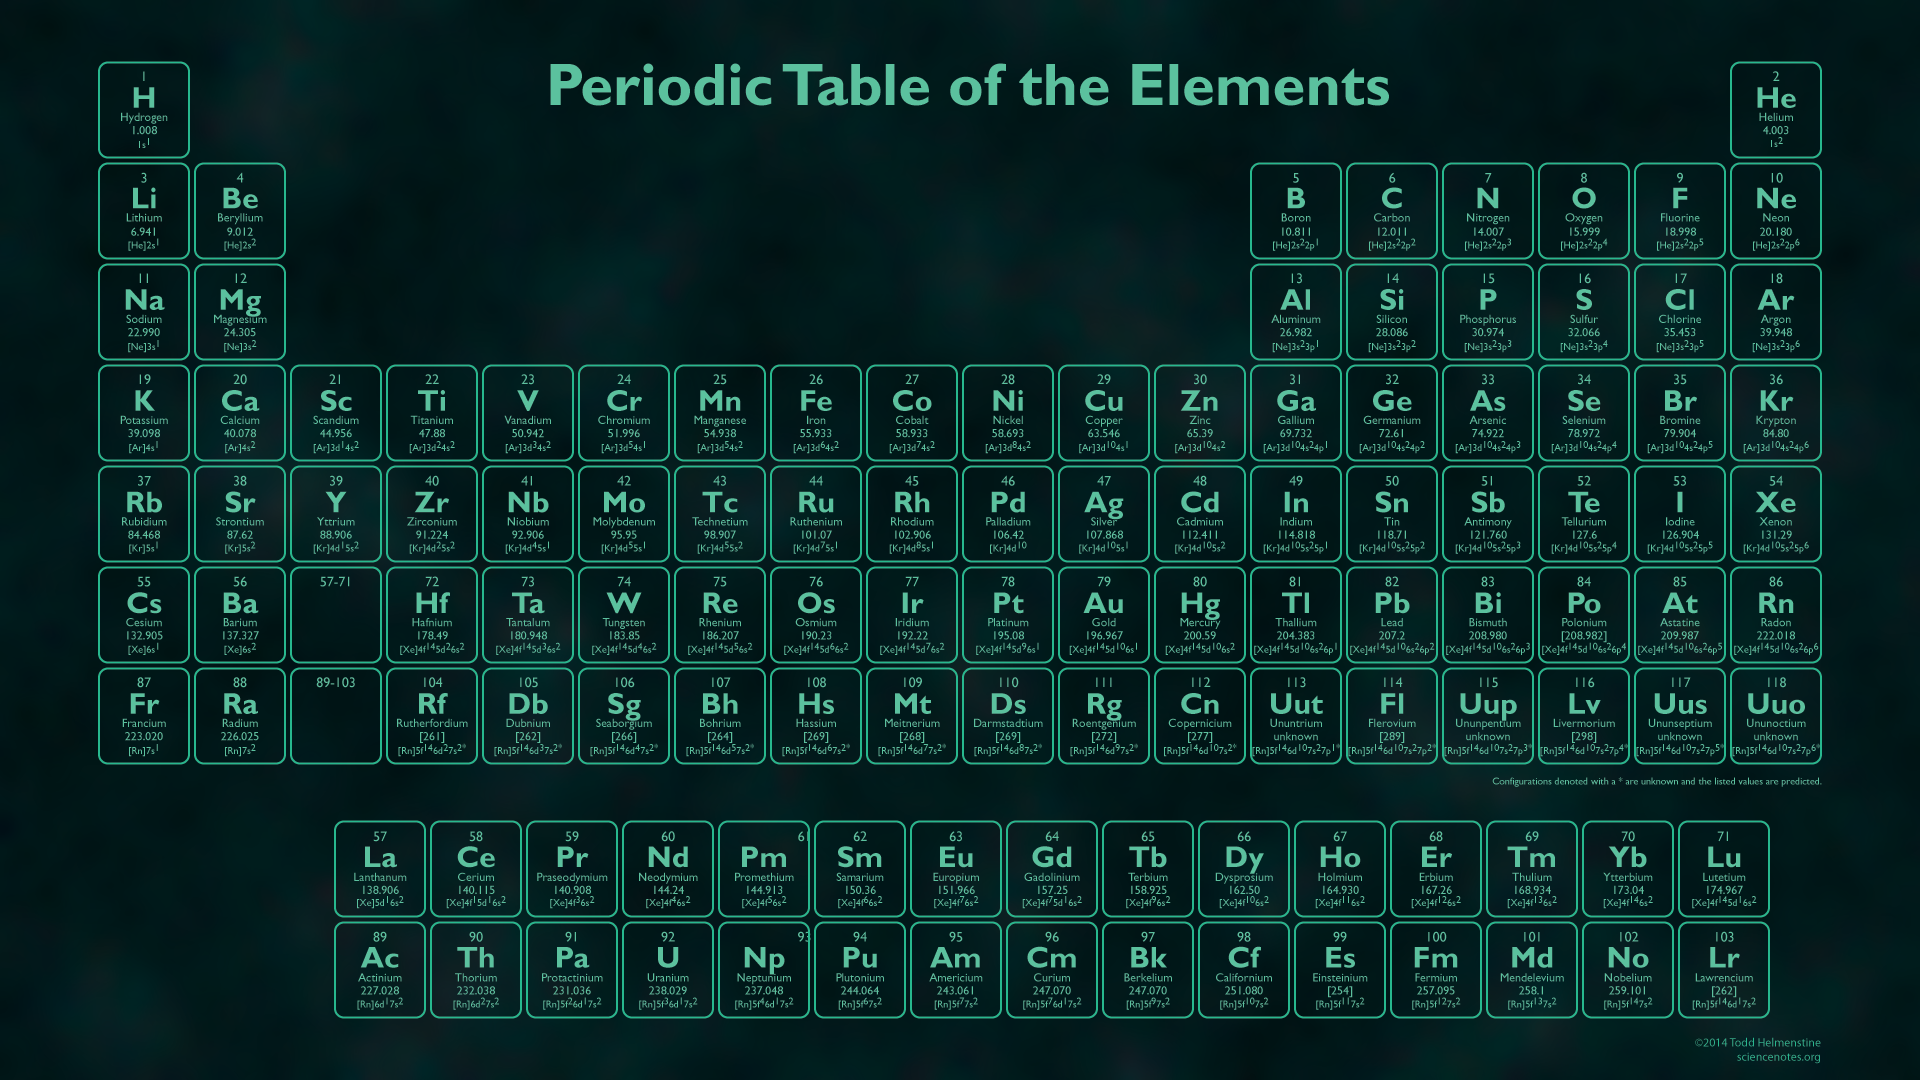 Glow in the dark periodic table wallpaper glow in the dark periodic table gamestrikefo Gallery